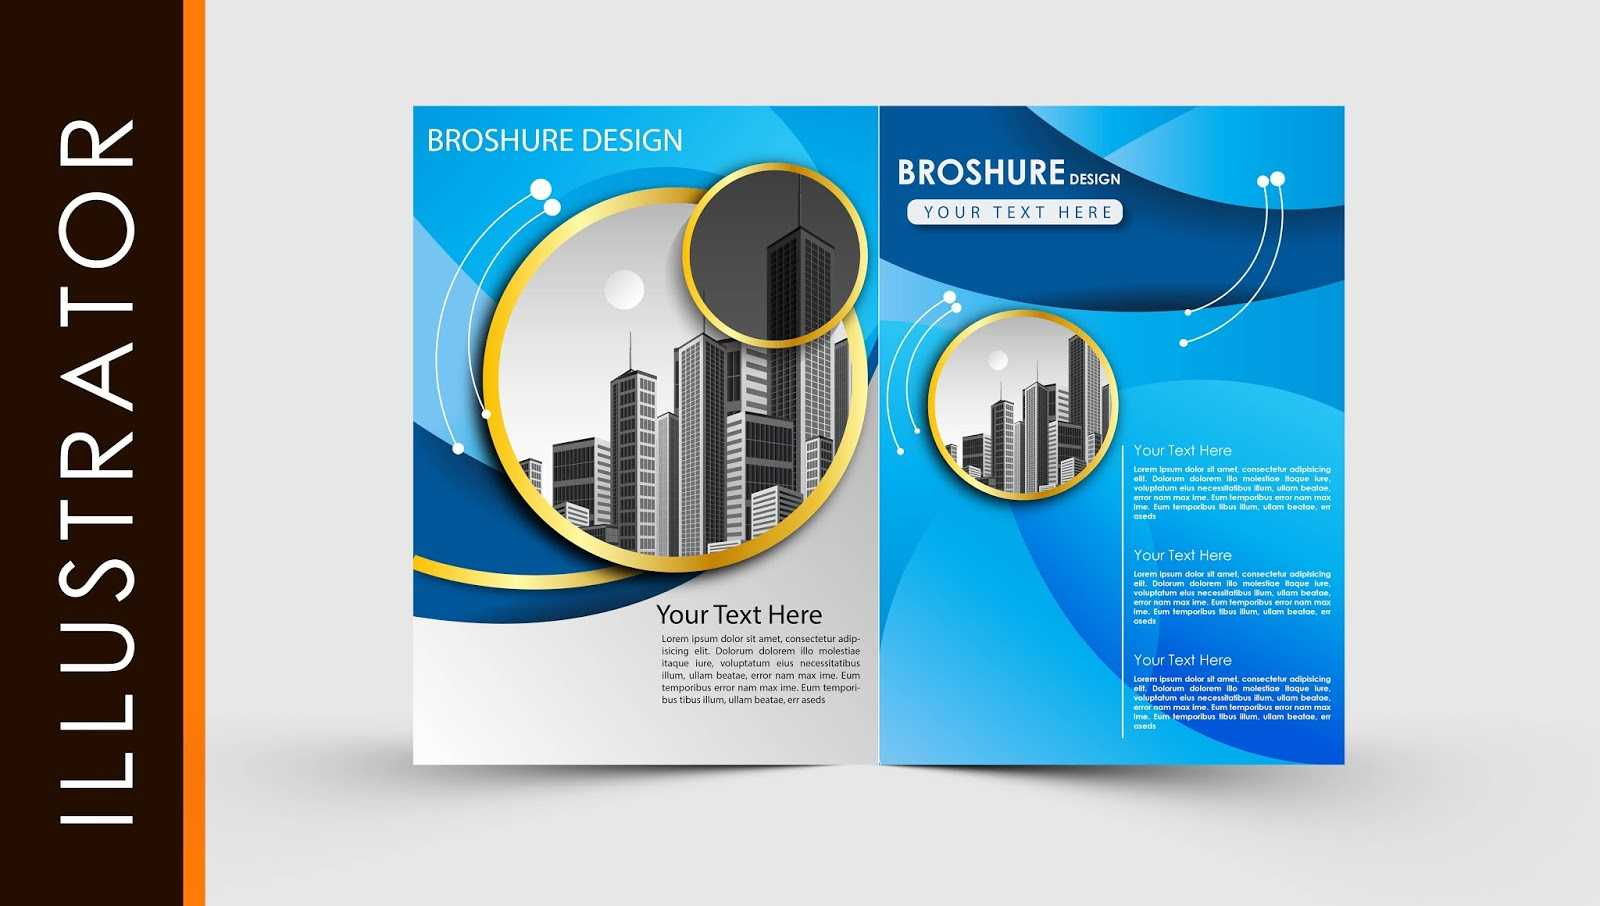 Free Download Adobe Illustrator Template Brochure Two Fold Within Brochure Template Illustrator Free Download